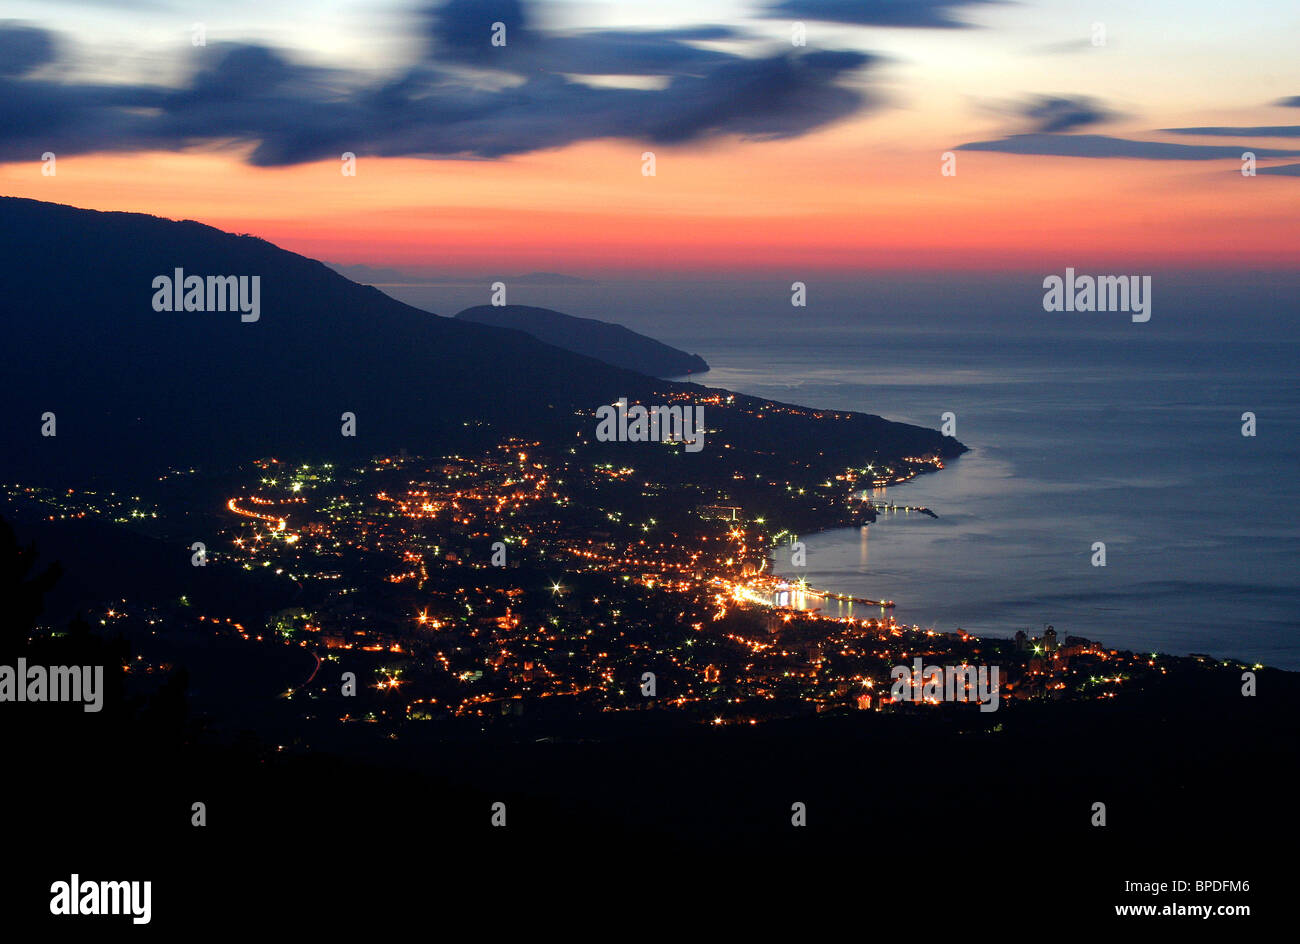 Southern coast of Crimea in pictures - Stock Image